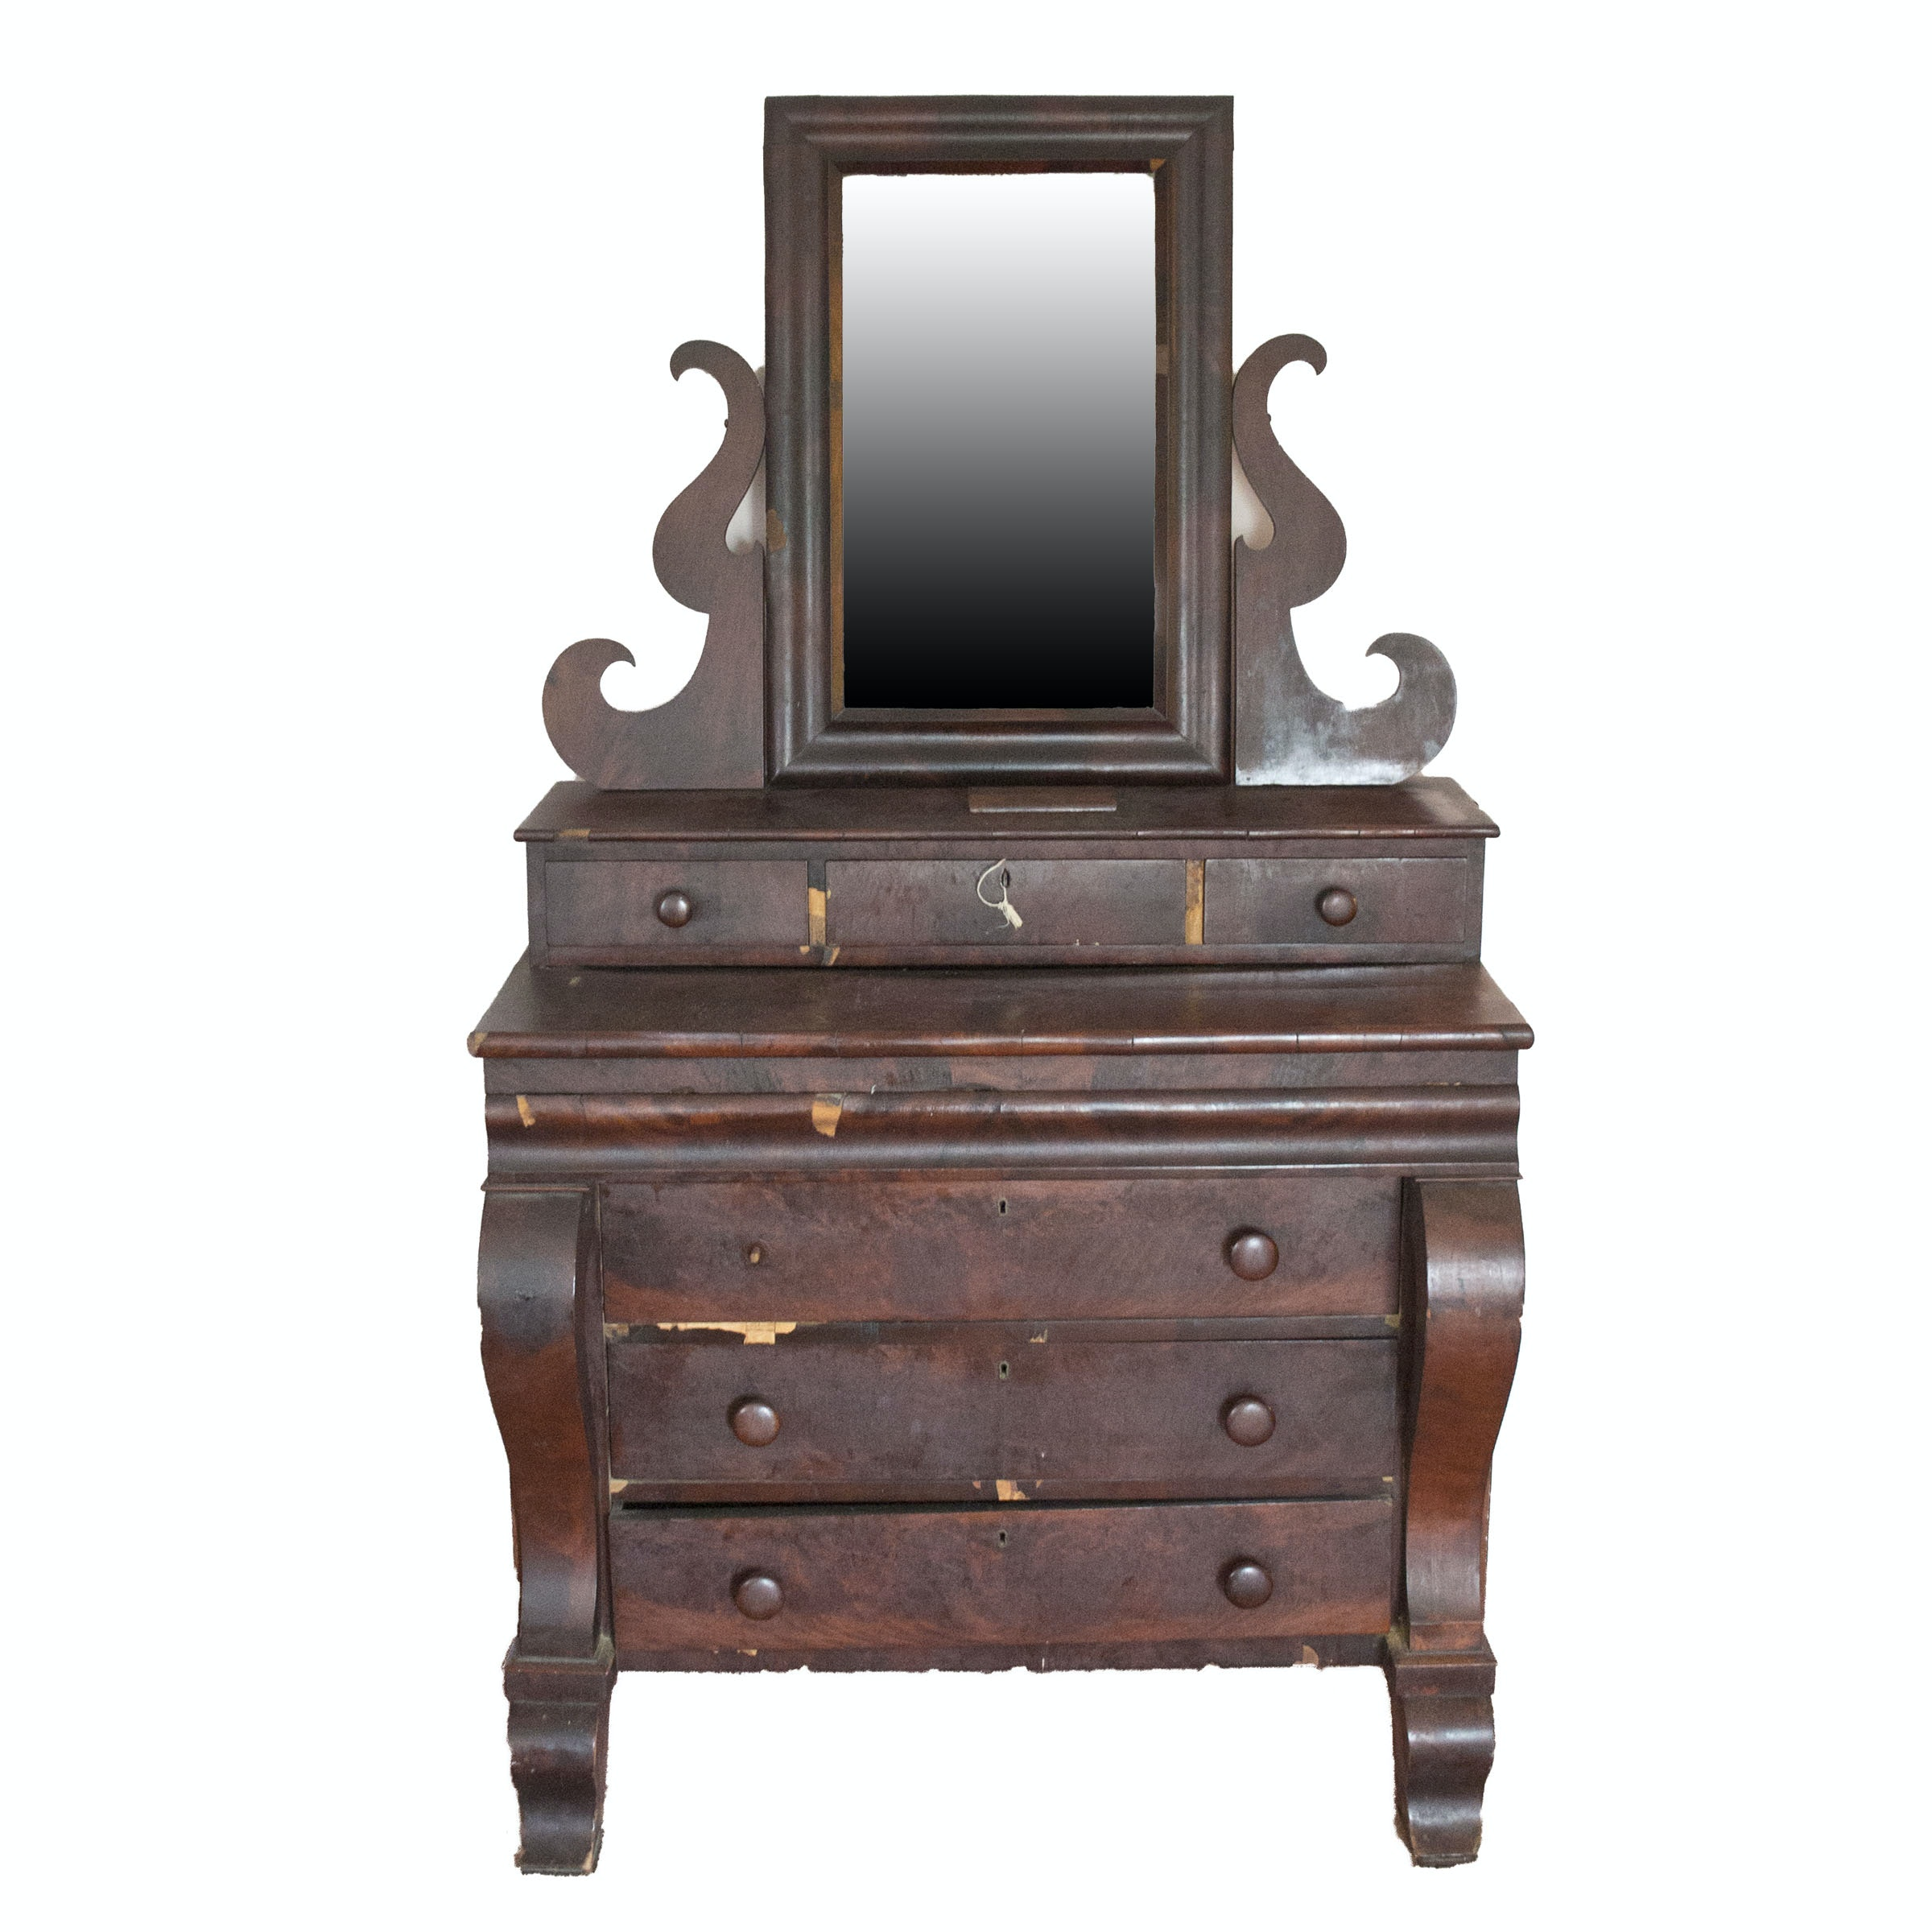 Antique American Empire-Style Gentleman's Chest With Mirror